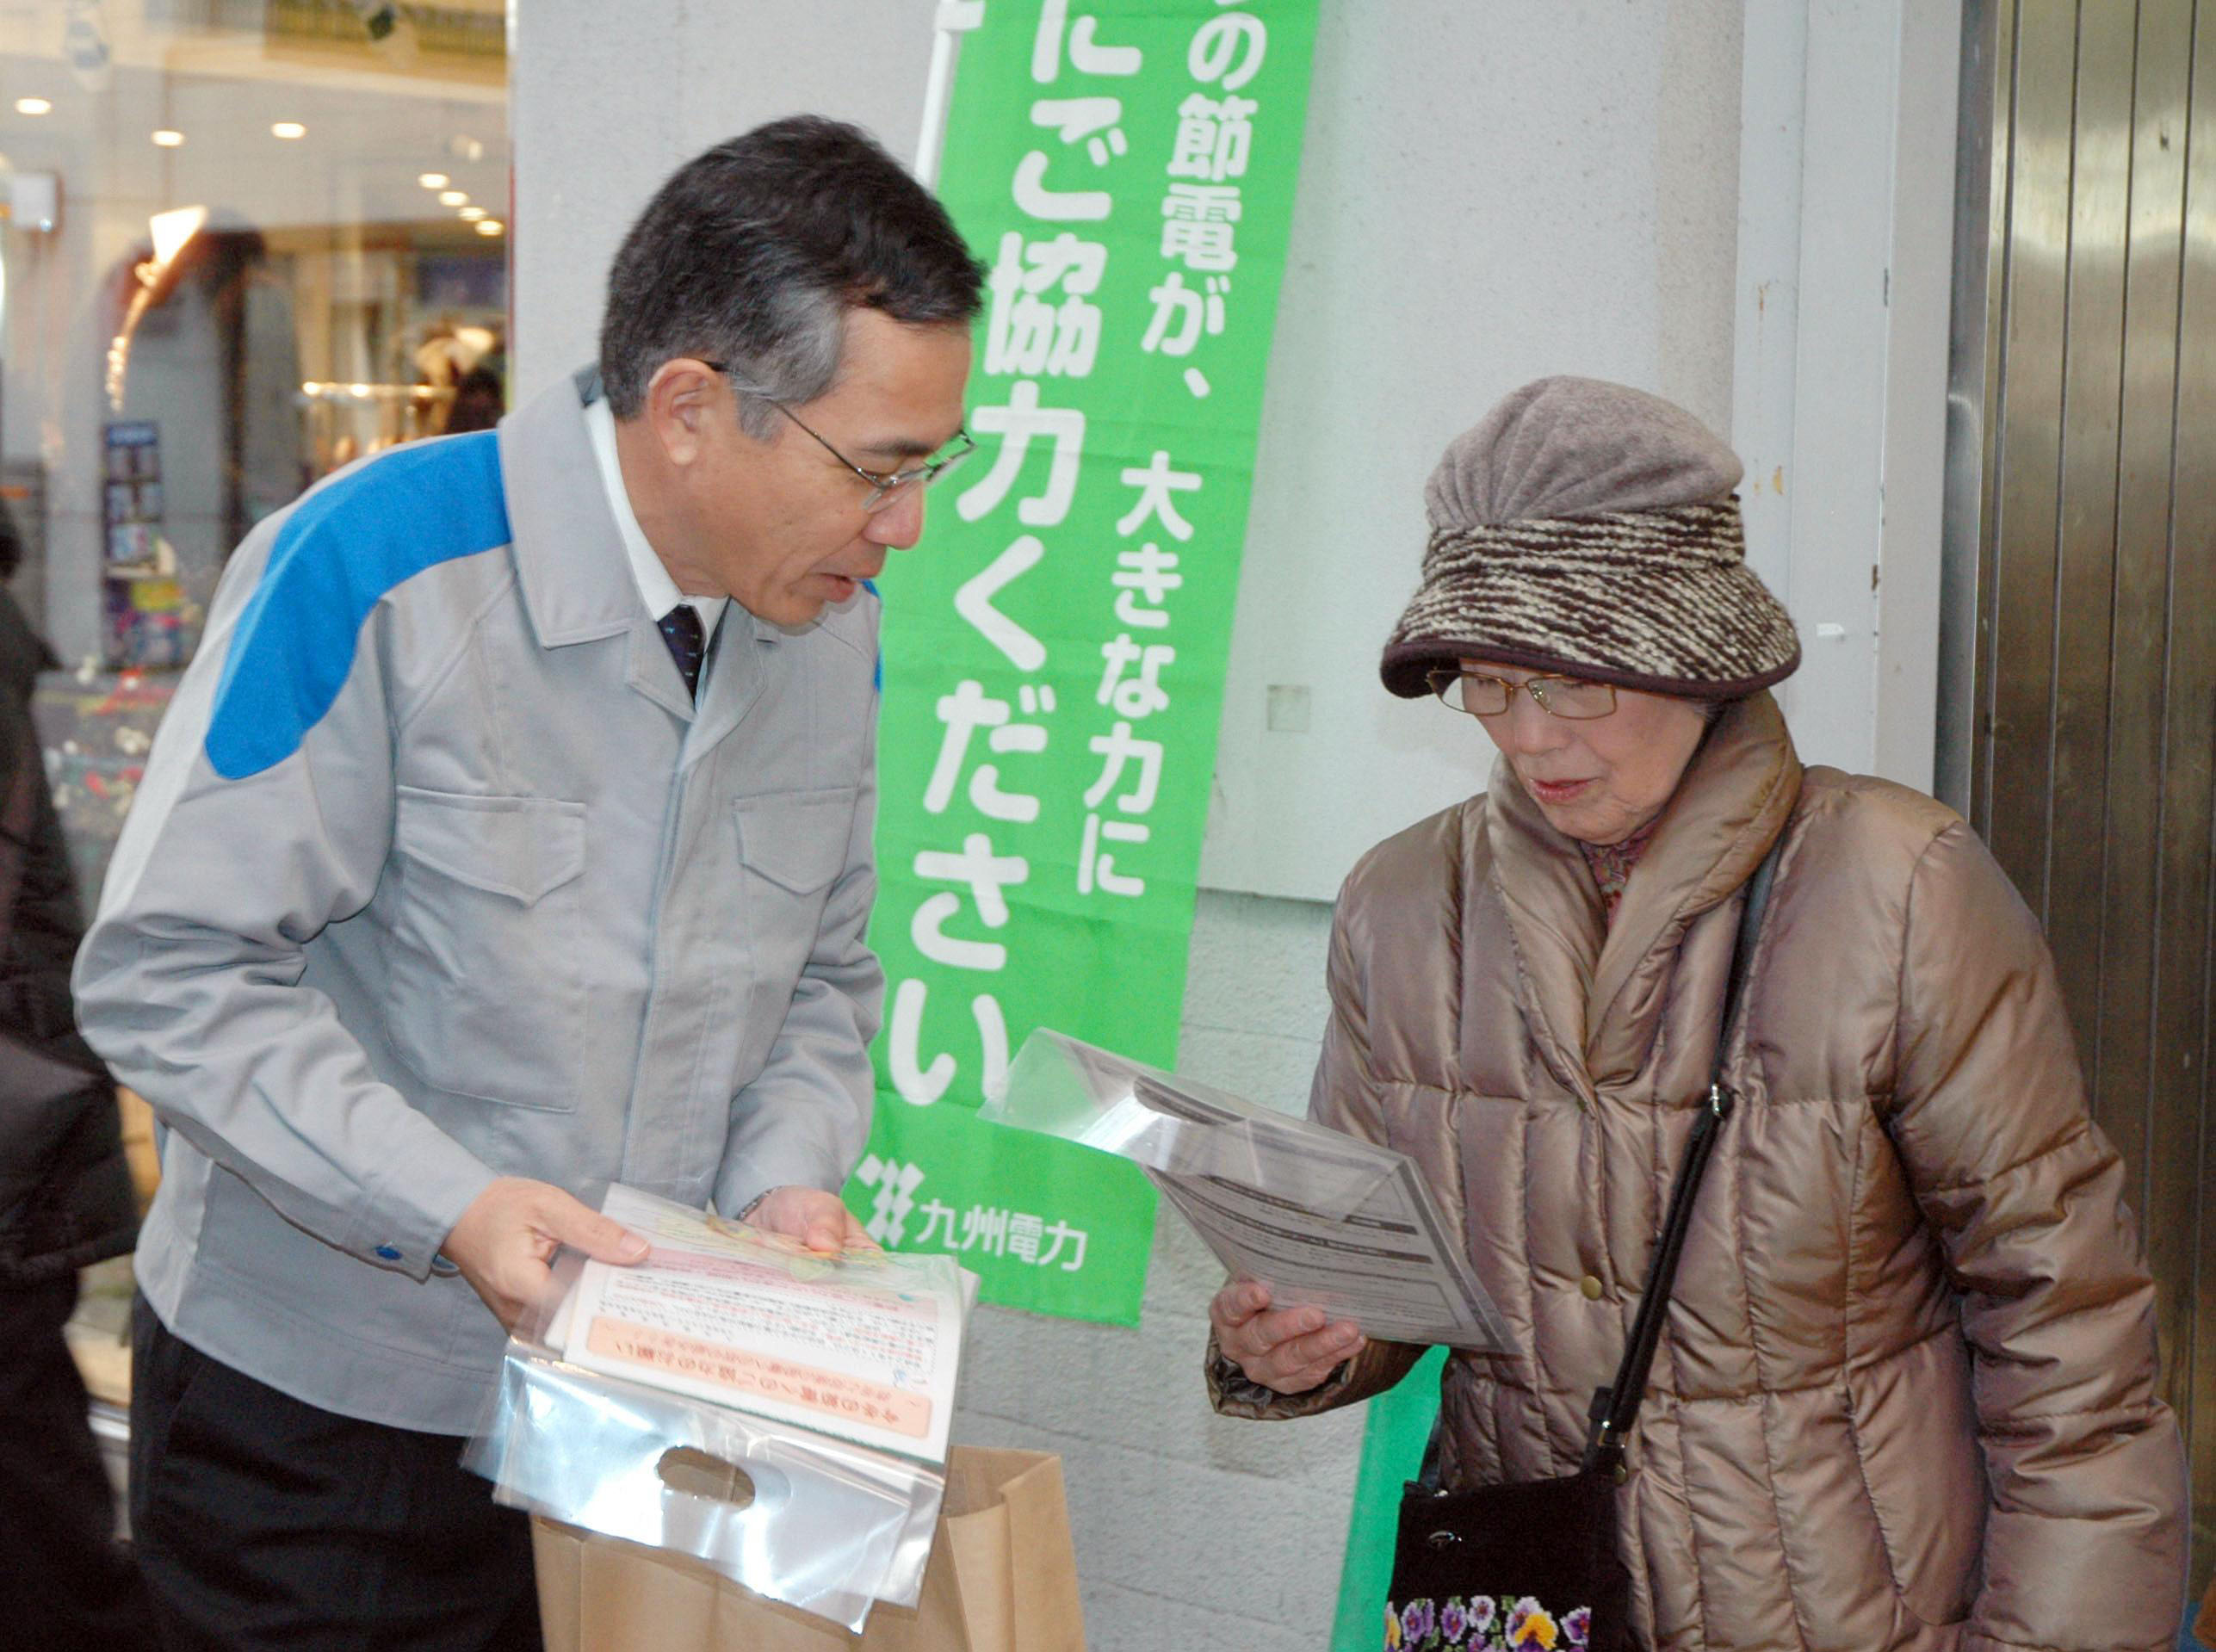 Appeal: An employee of Kyushu Electric Power Co. hands out leaflets asking people to save energy in Fukuoka on Monday.   KYODO